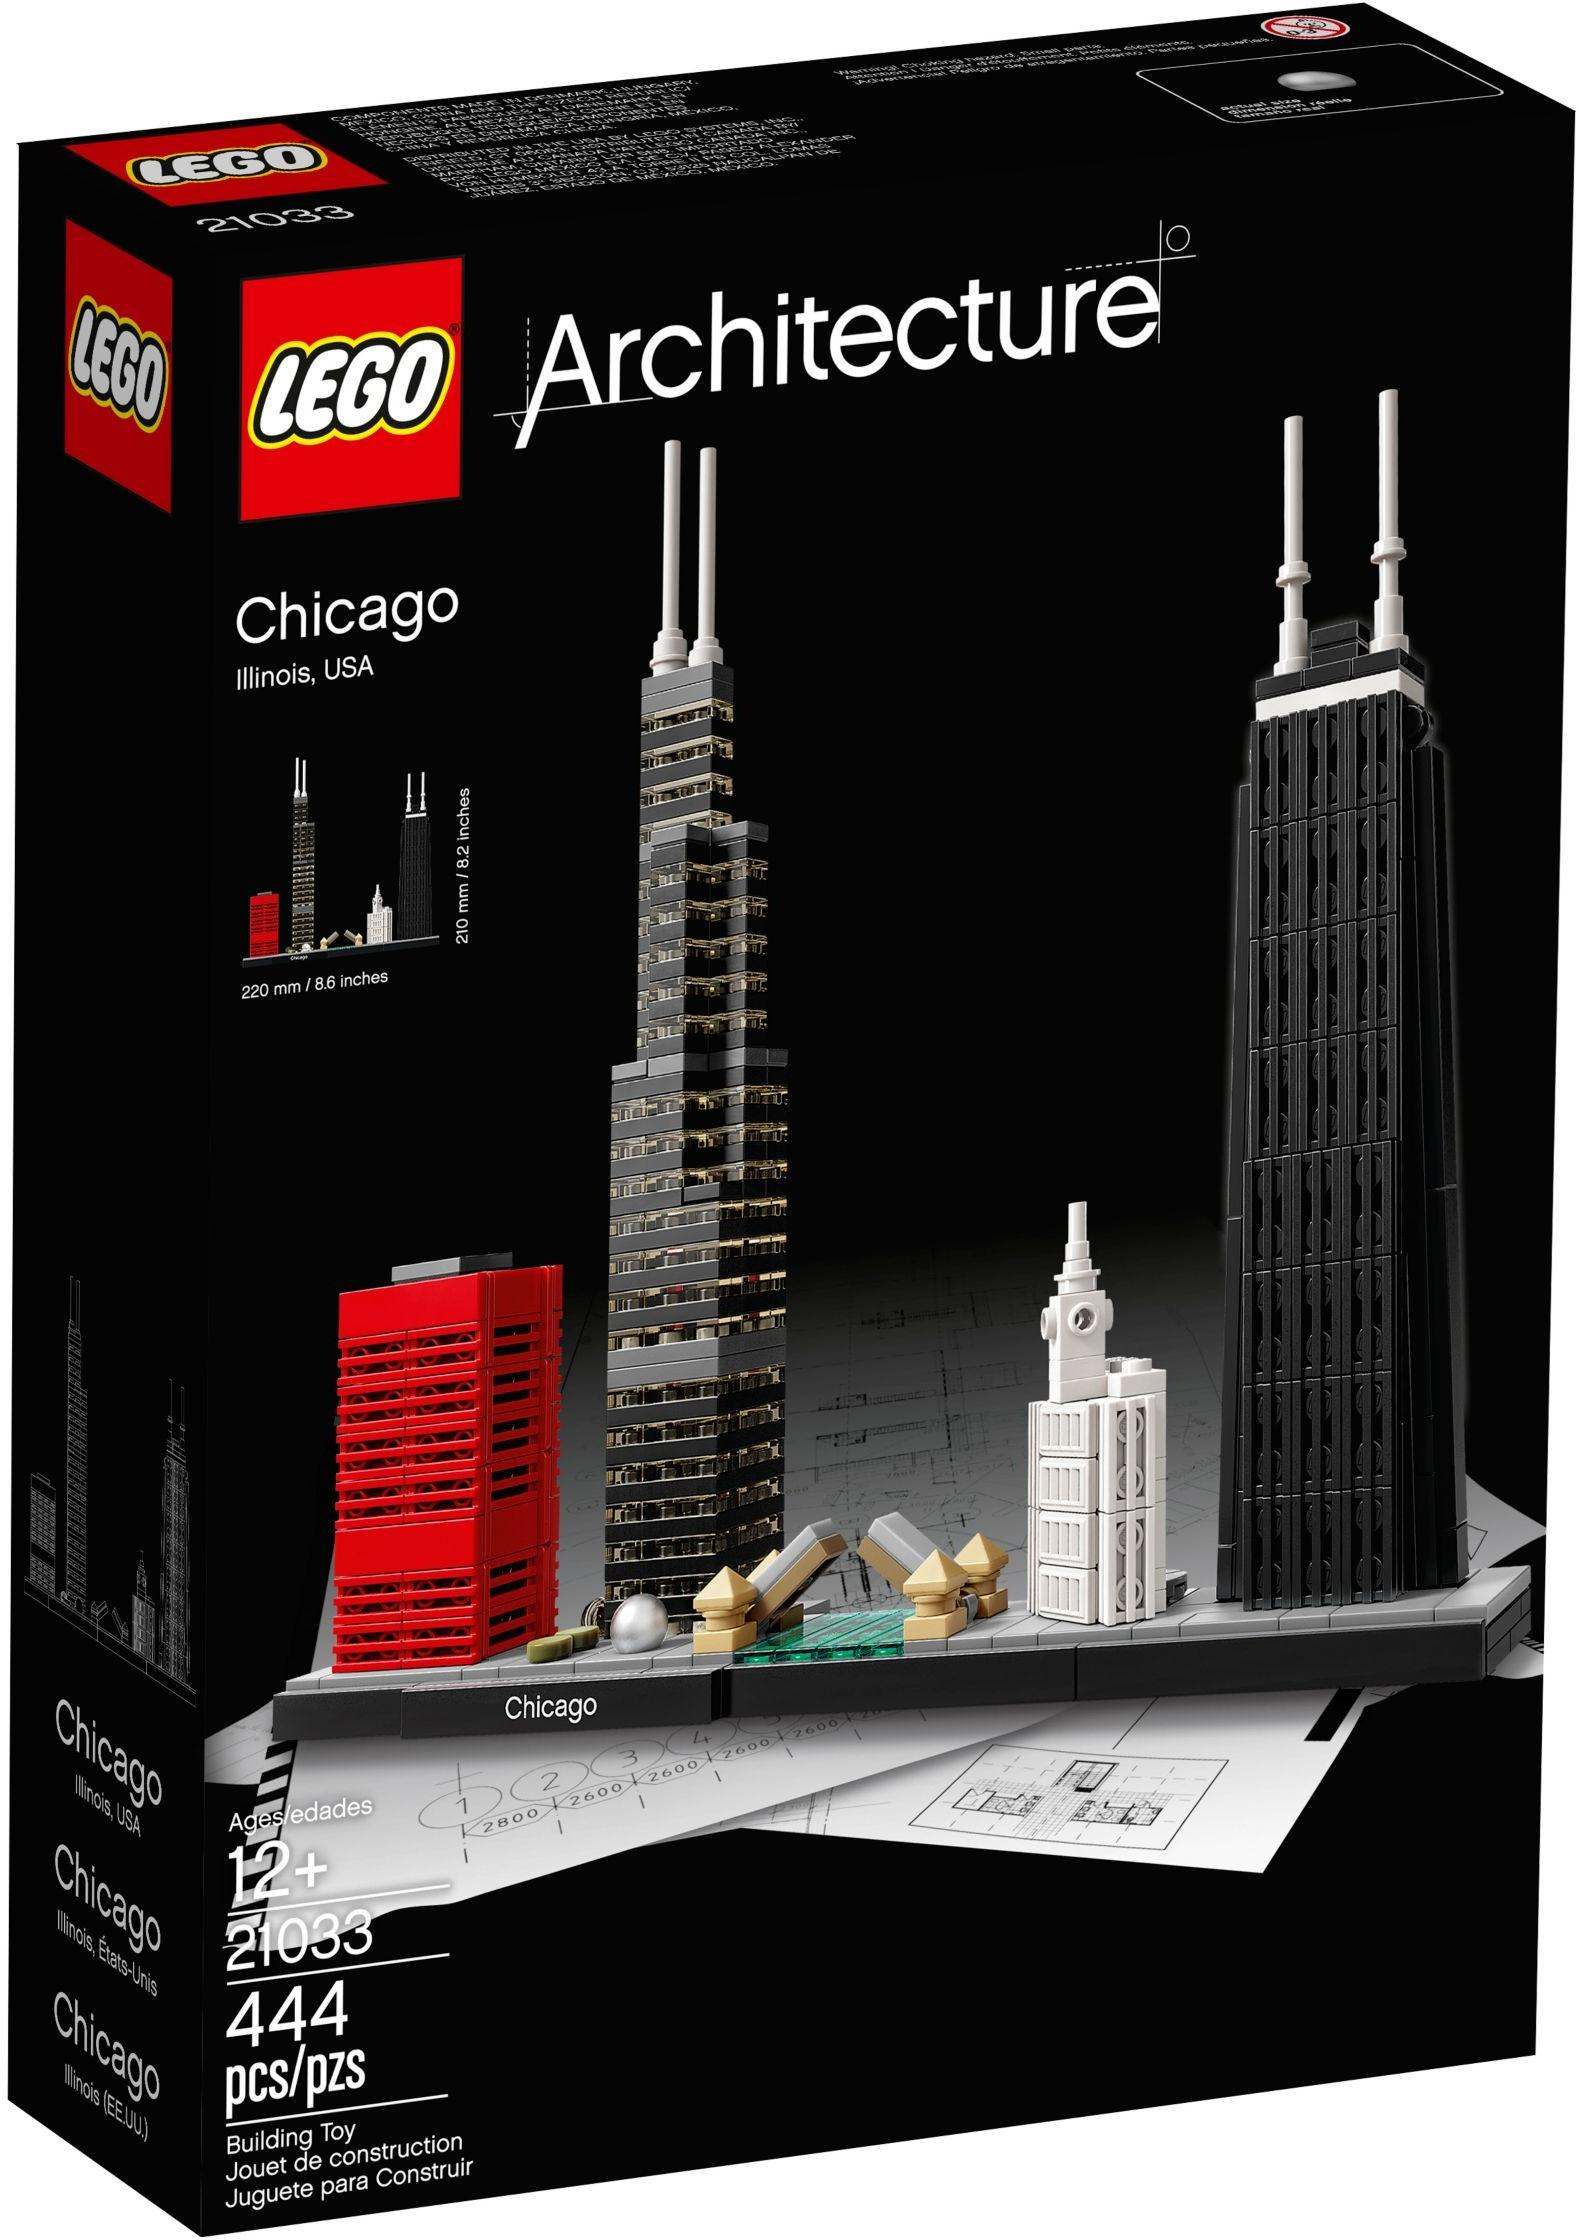 Lego Architecture Chicago (21033)